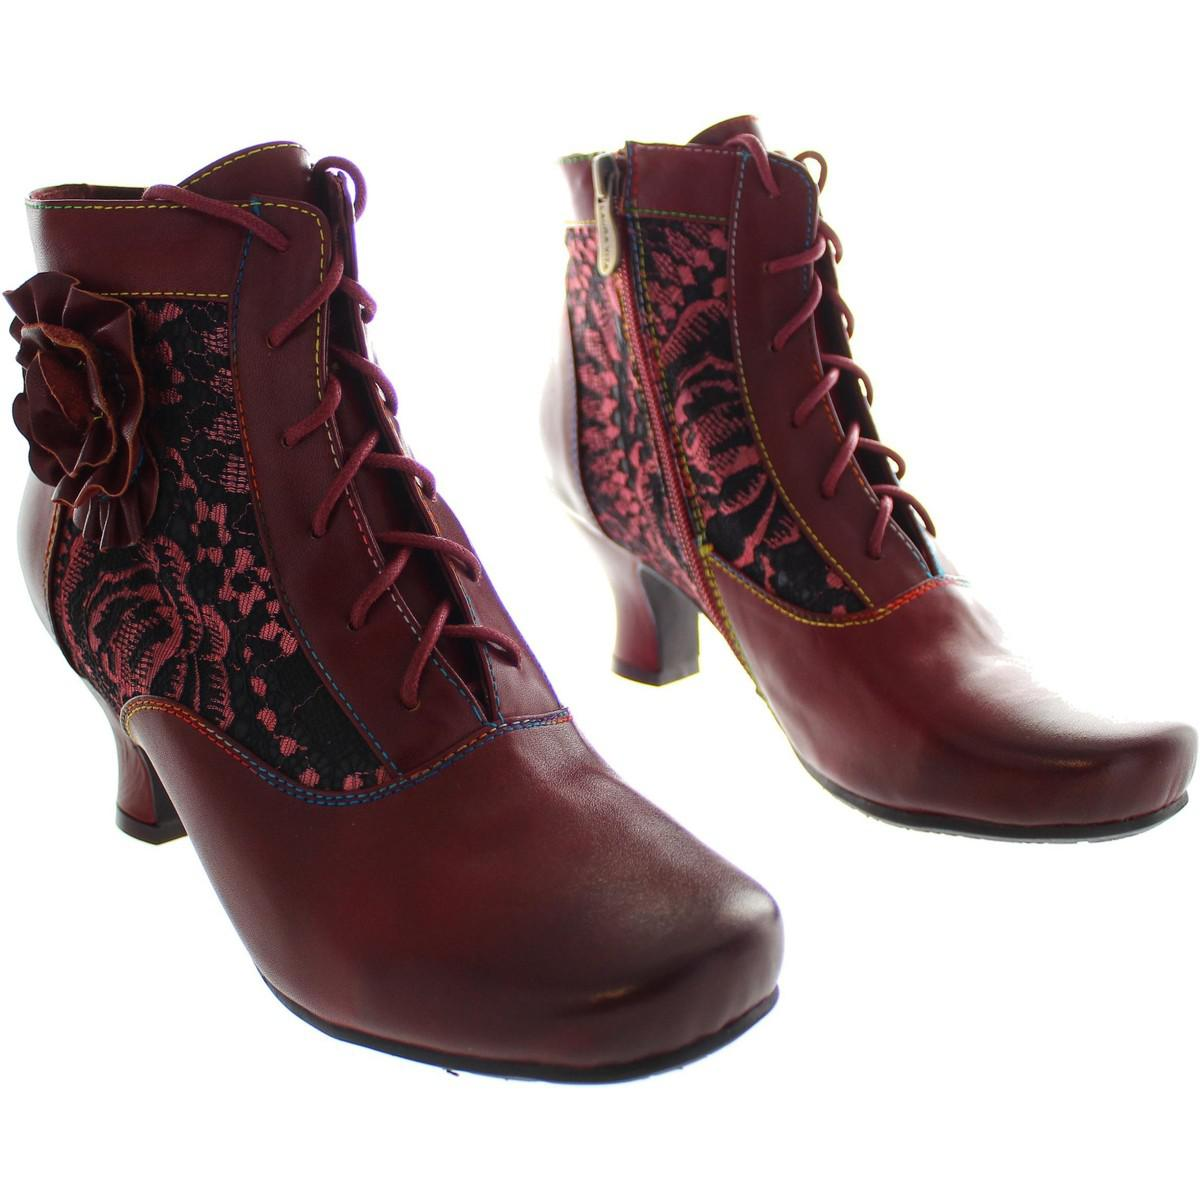 Laura Vita Candice 03 Women's Low Ankle Boots In Red